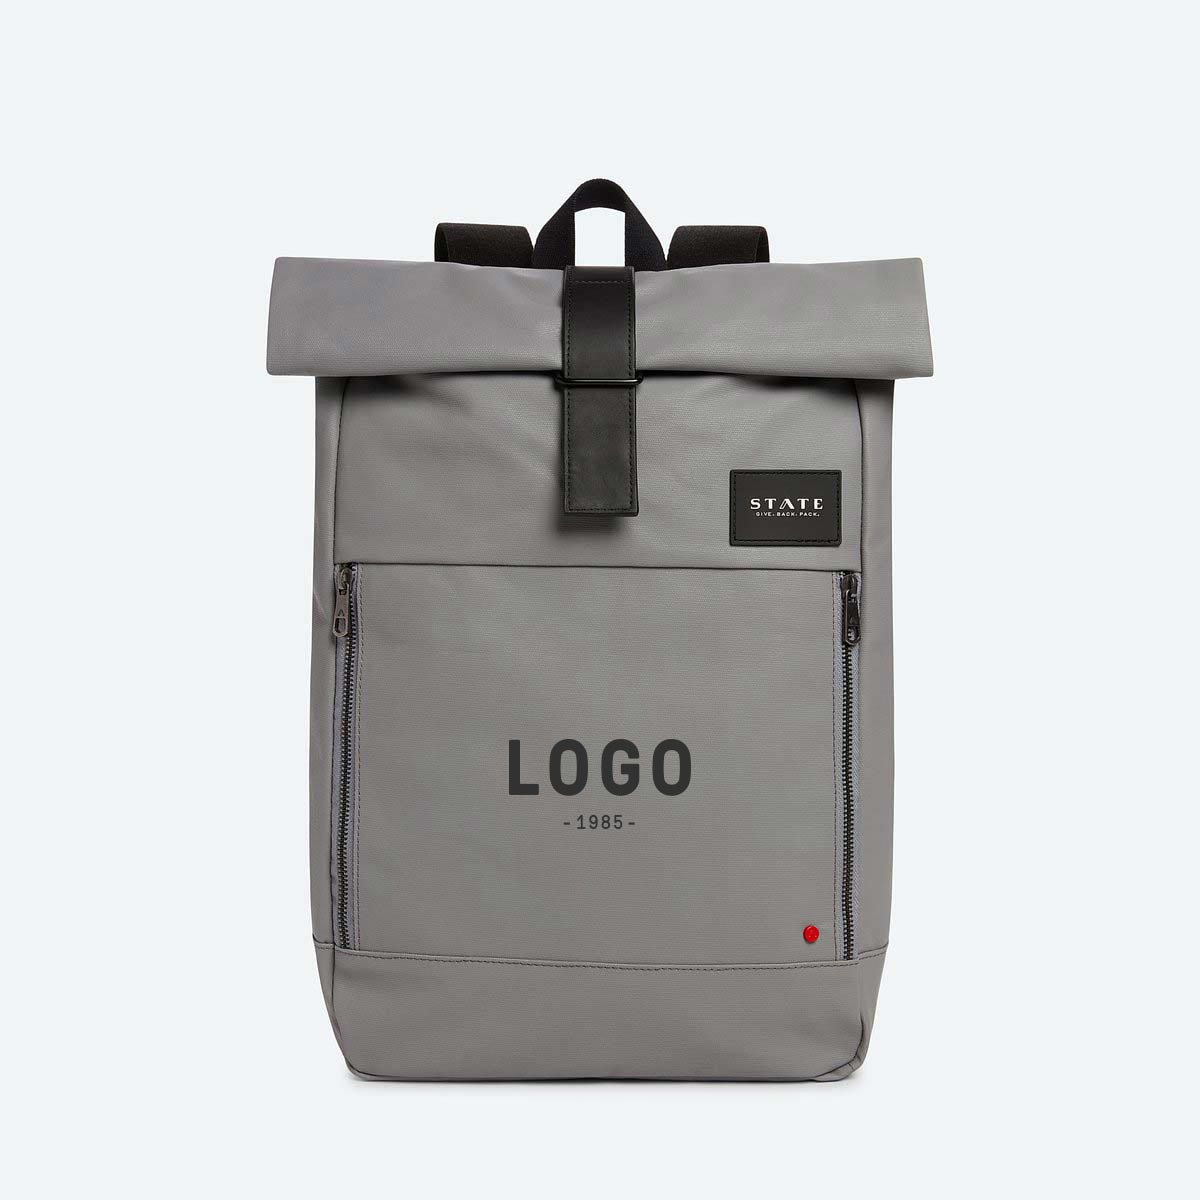 130164 colby rolltop backpack one color one location screenprint